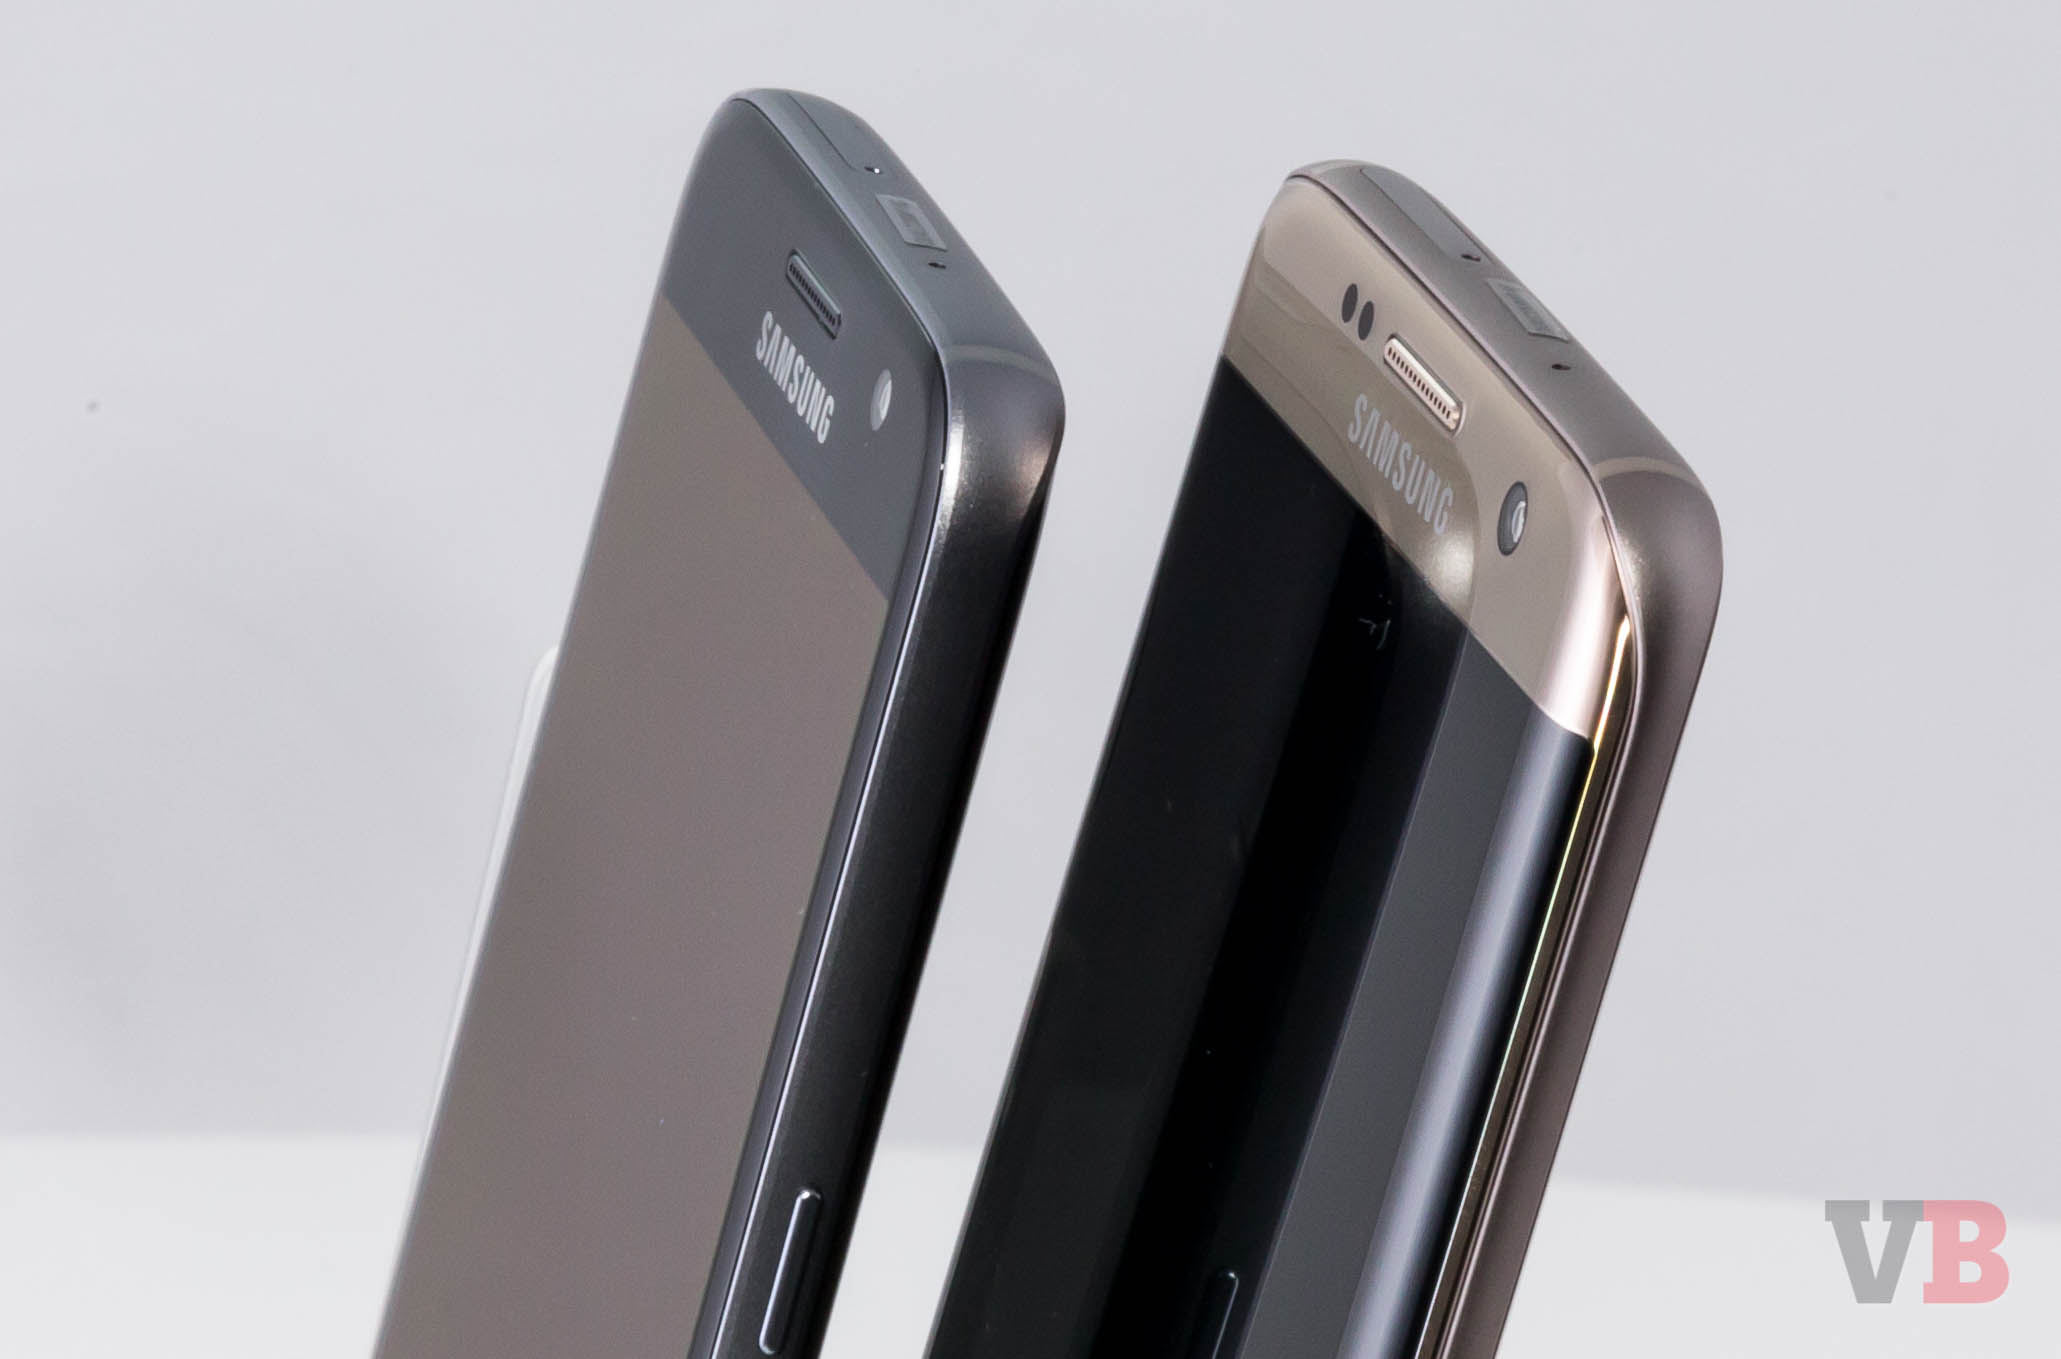 Close up of the Samsung Galaxy S7 and S7 edge.